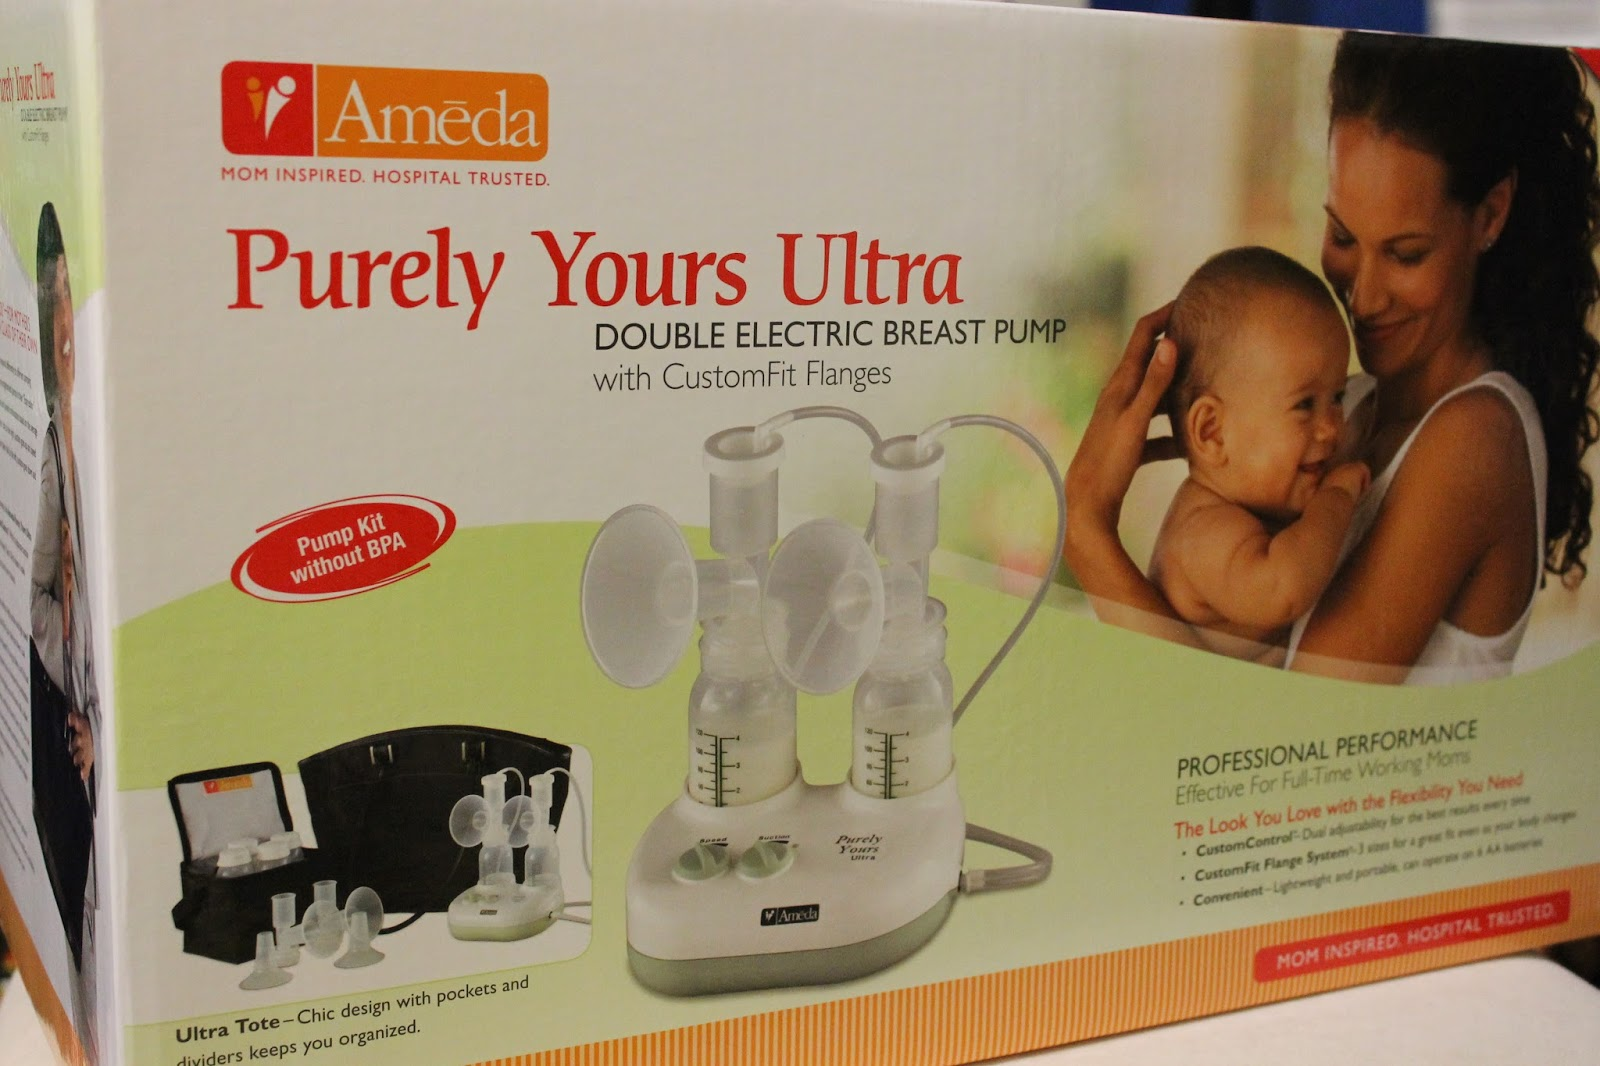 Dealy Os Product Reviews: Ameda Purely Yours Ultra Breast Pump Review